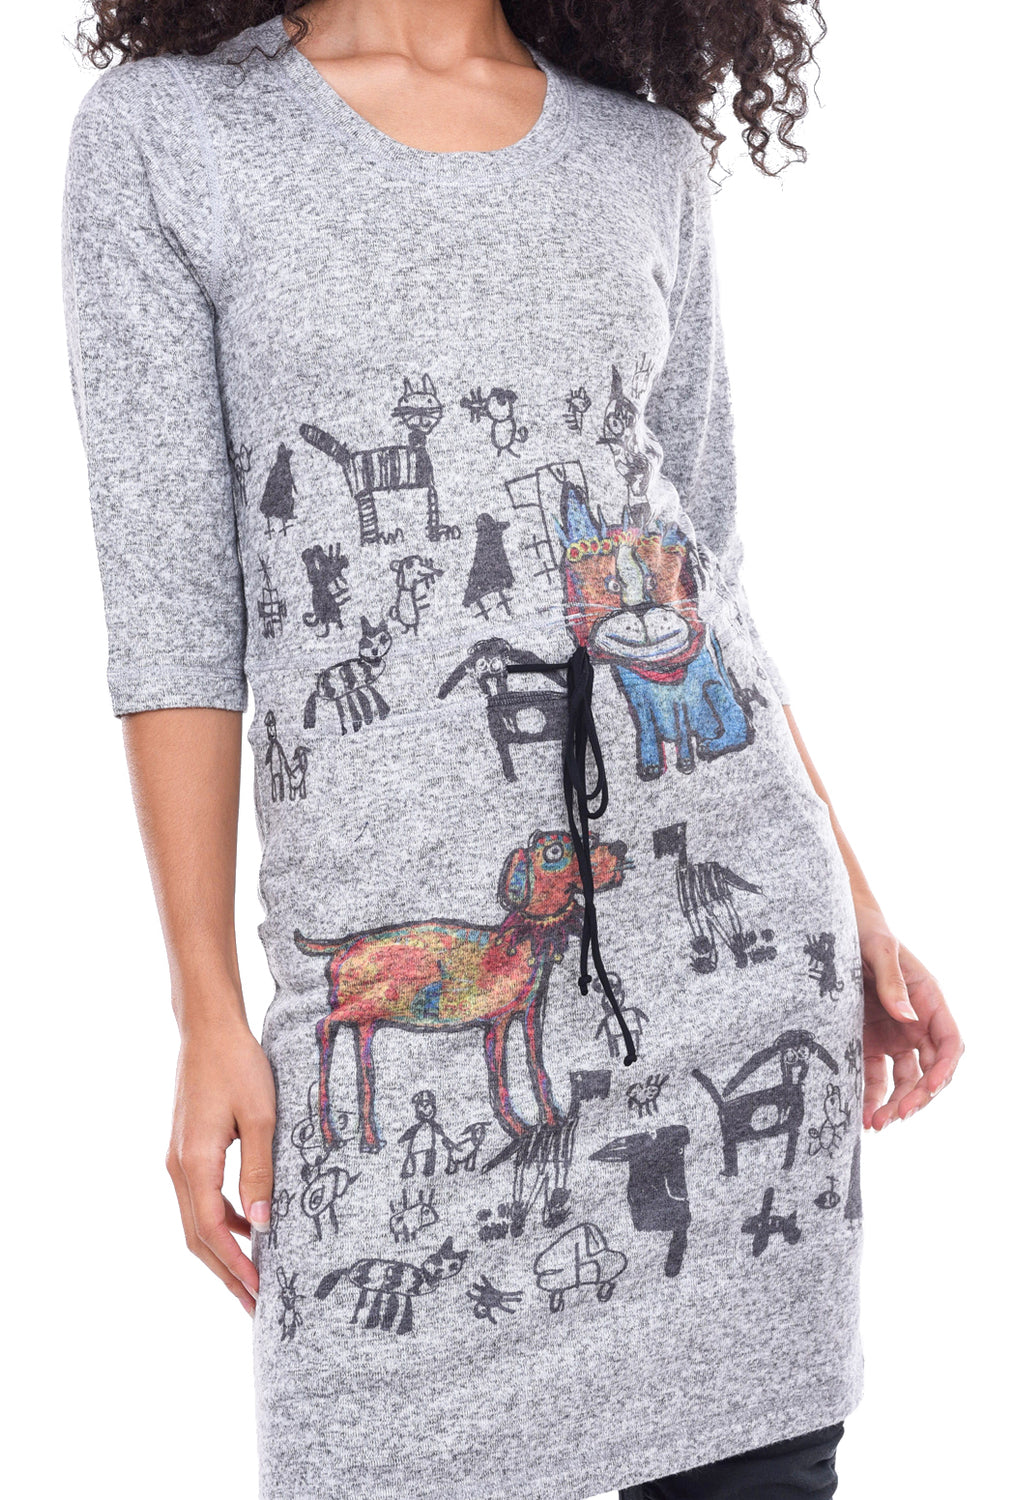 Inoah L/S Drawstring Dress, Show Time